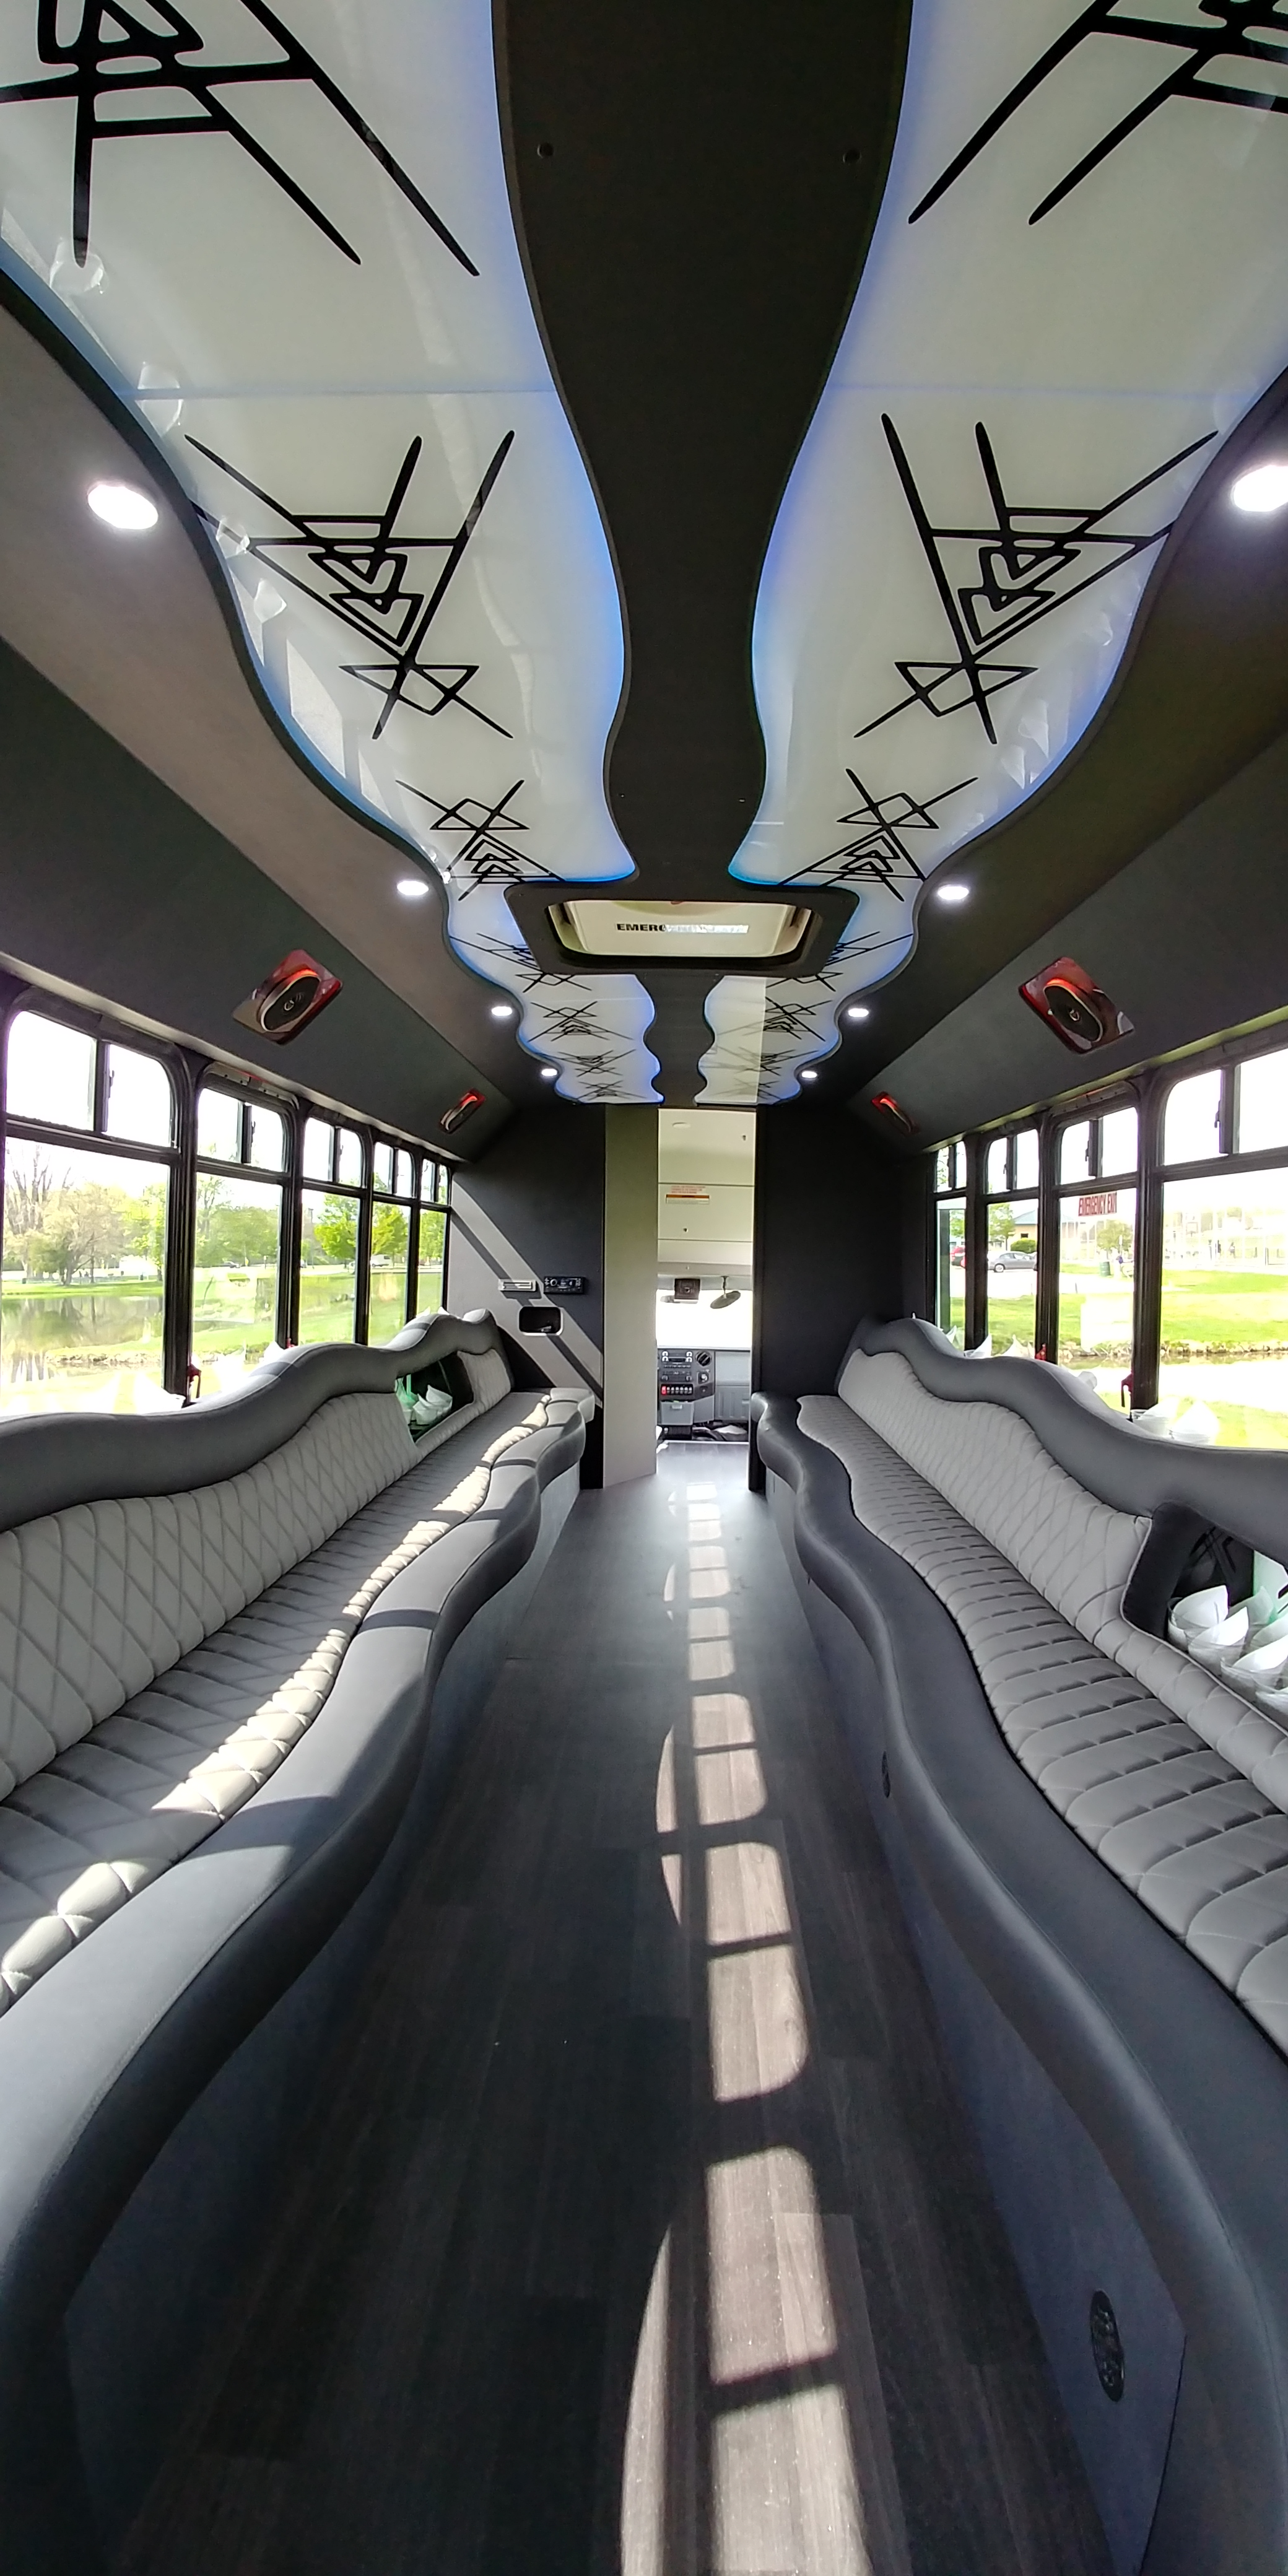 28 Passenger Luxury Limo Bus Interior 6